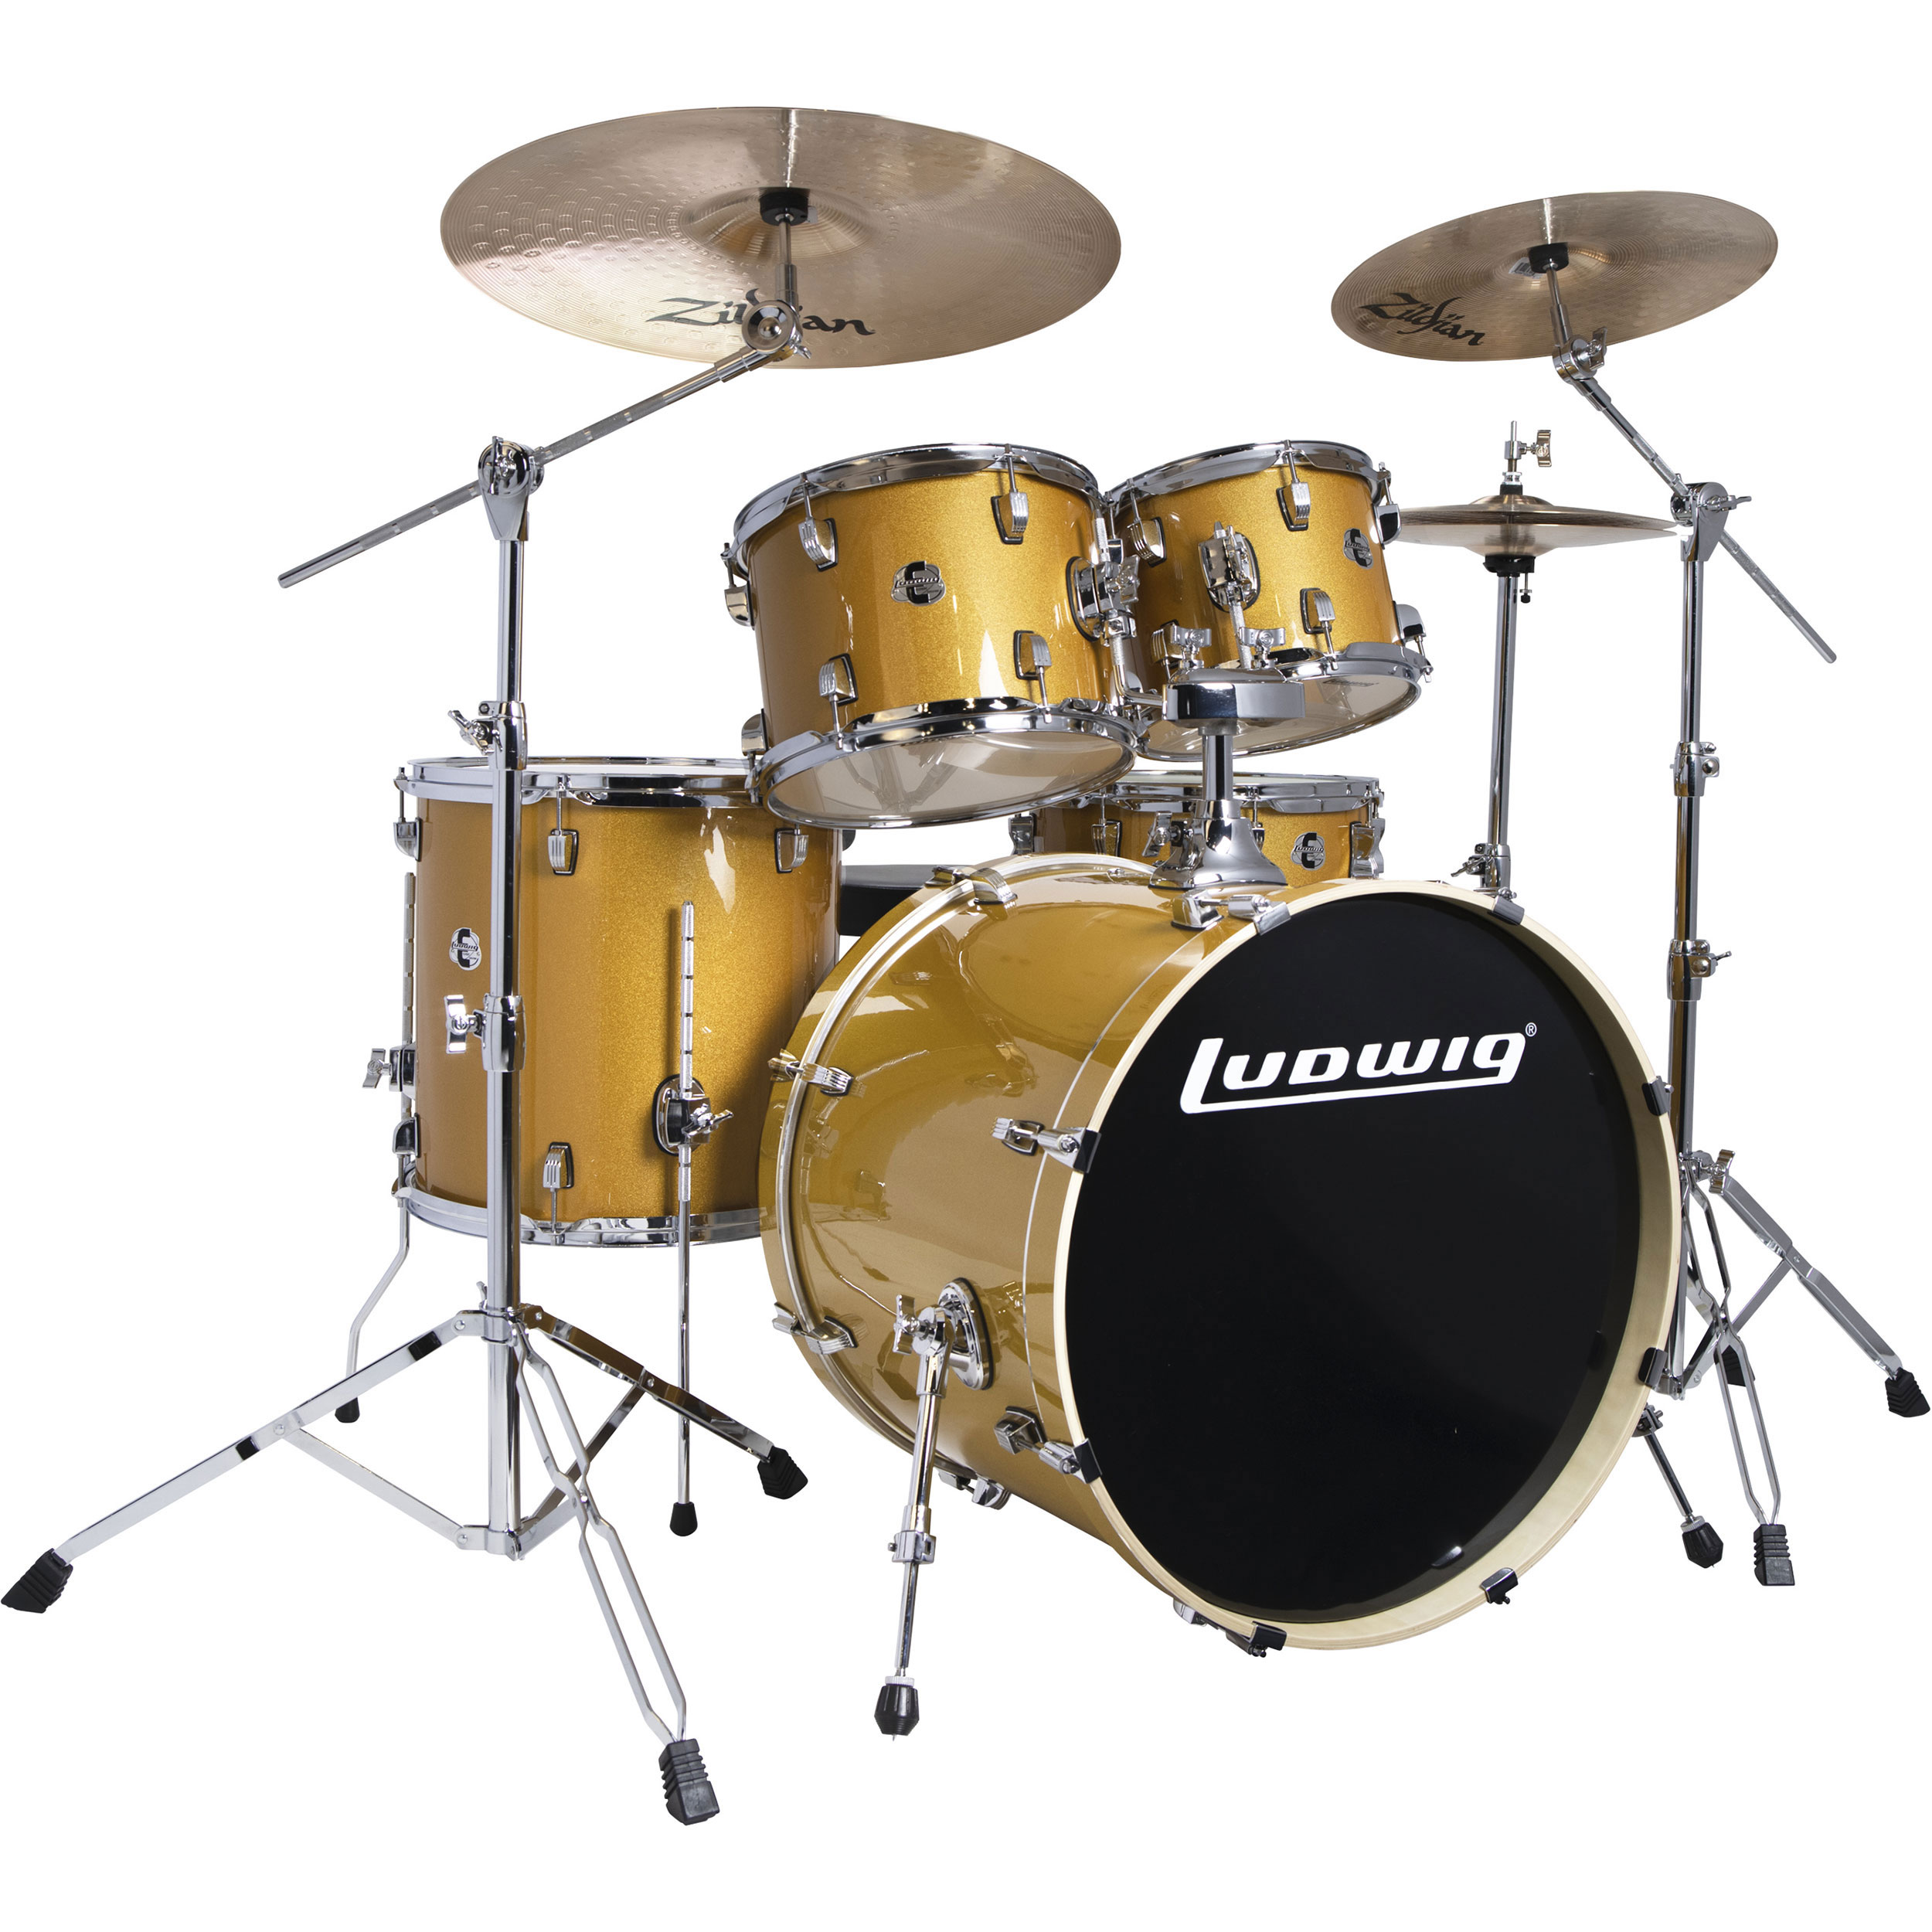 "Ludwig Evolution 5-Piece Drum Set with Hardware & Zildjian I Series Cymbals (22"" Bass, 10/12/16"" Toms, 14"" Snare)"